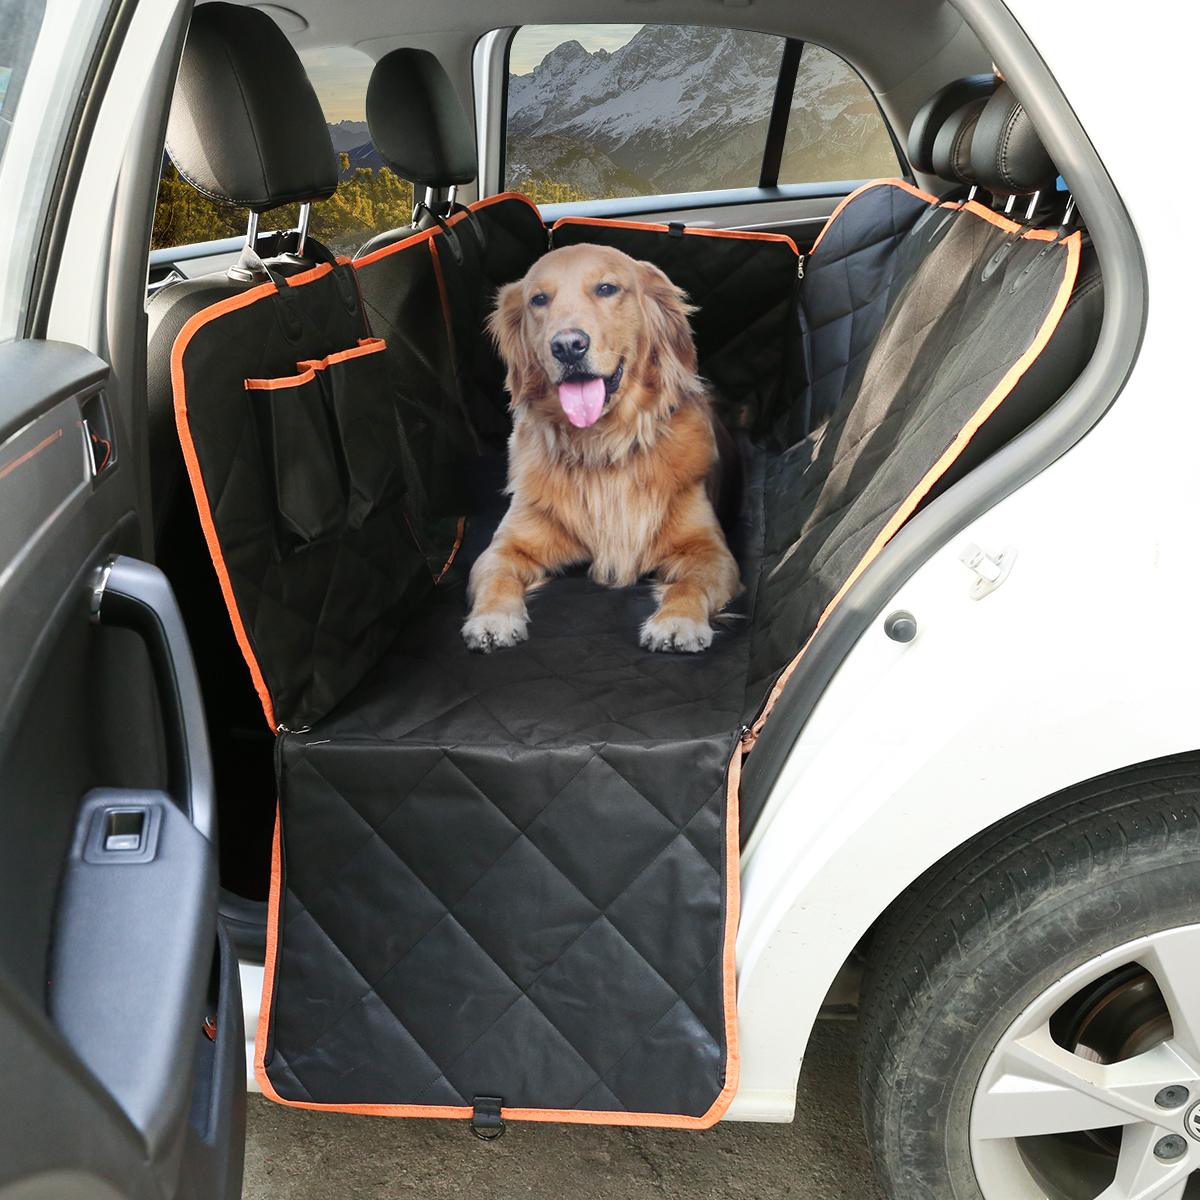 dog machine flaps cars nac seat washable hammock zac extra barrier nonslip dp waterproof car and cover with for pet suv anchors amazon com side